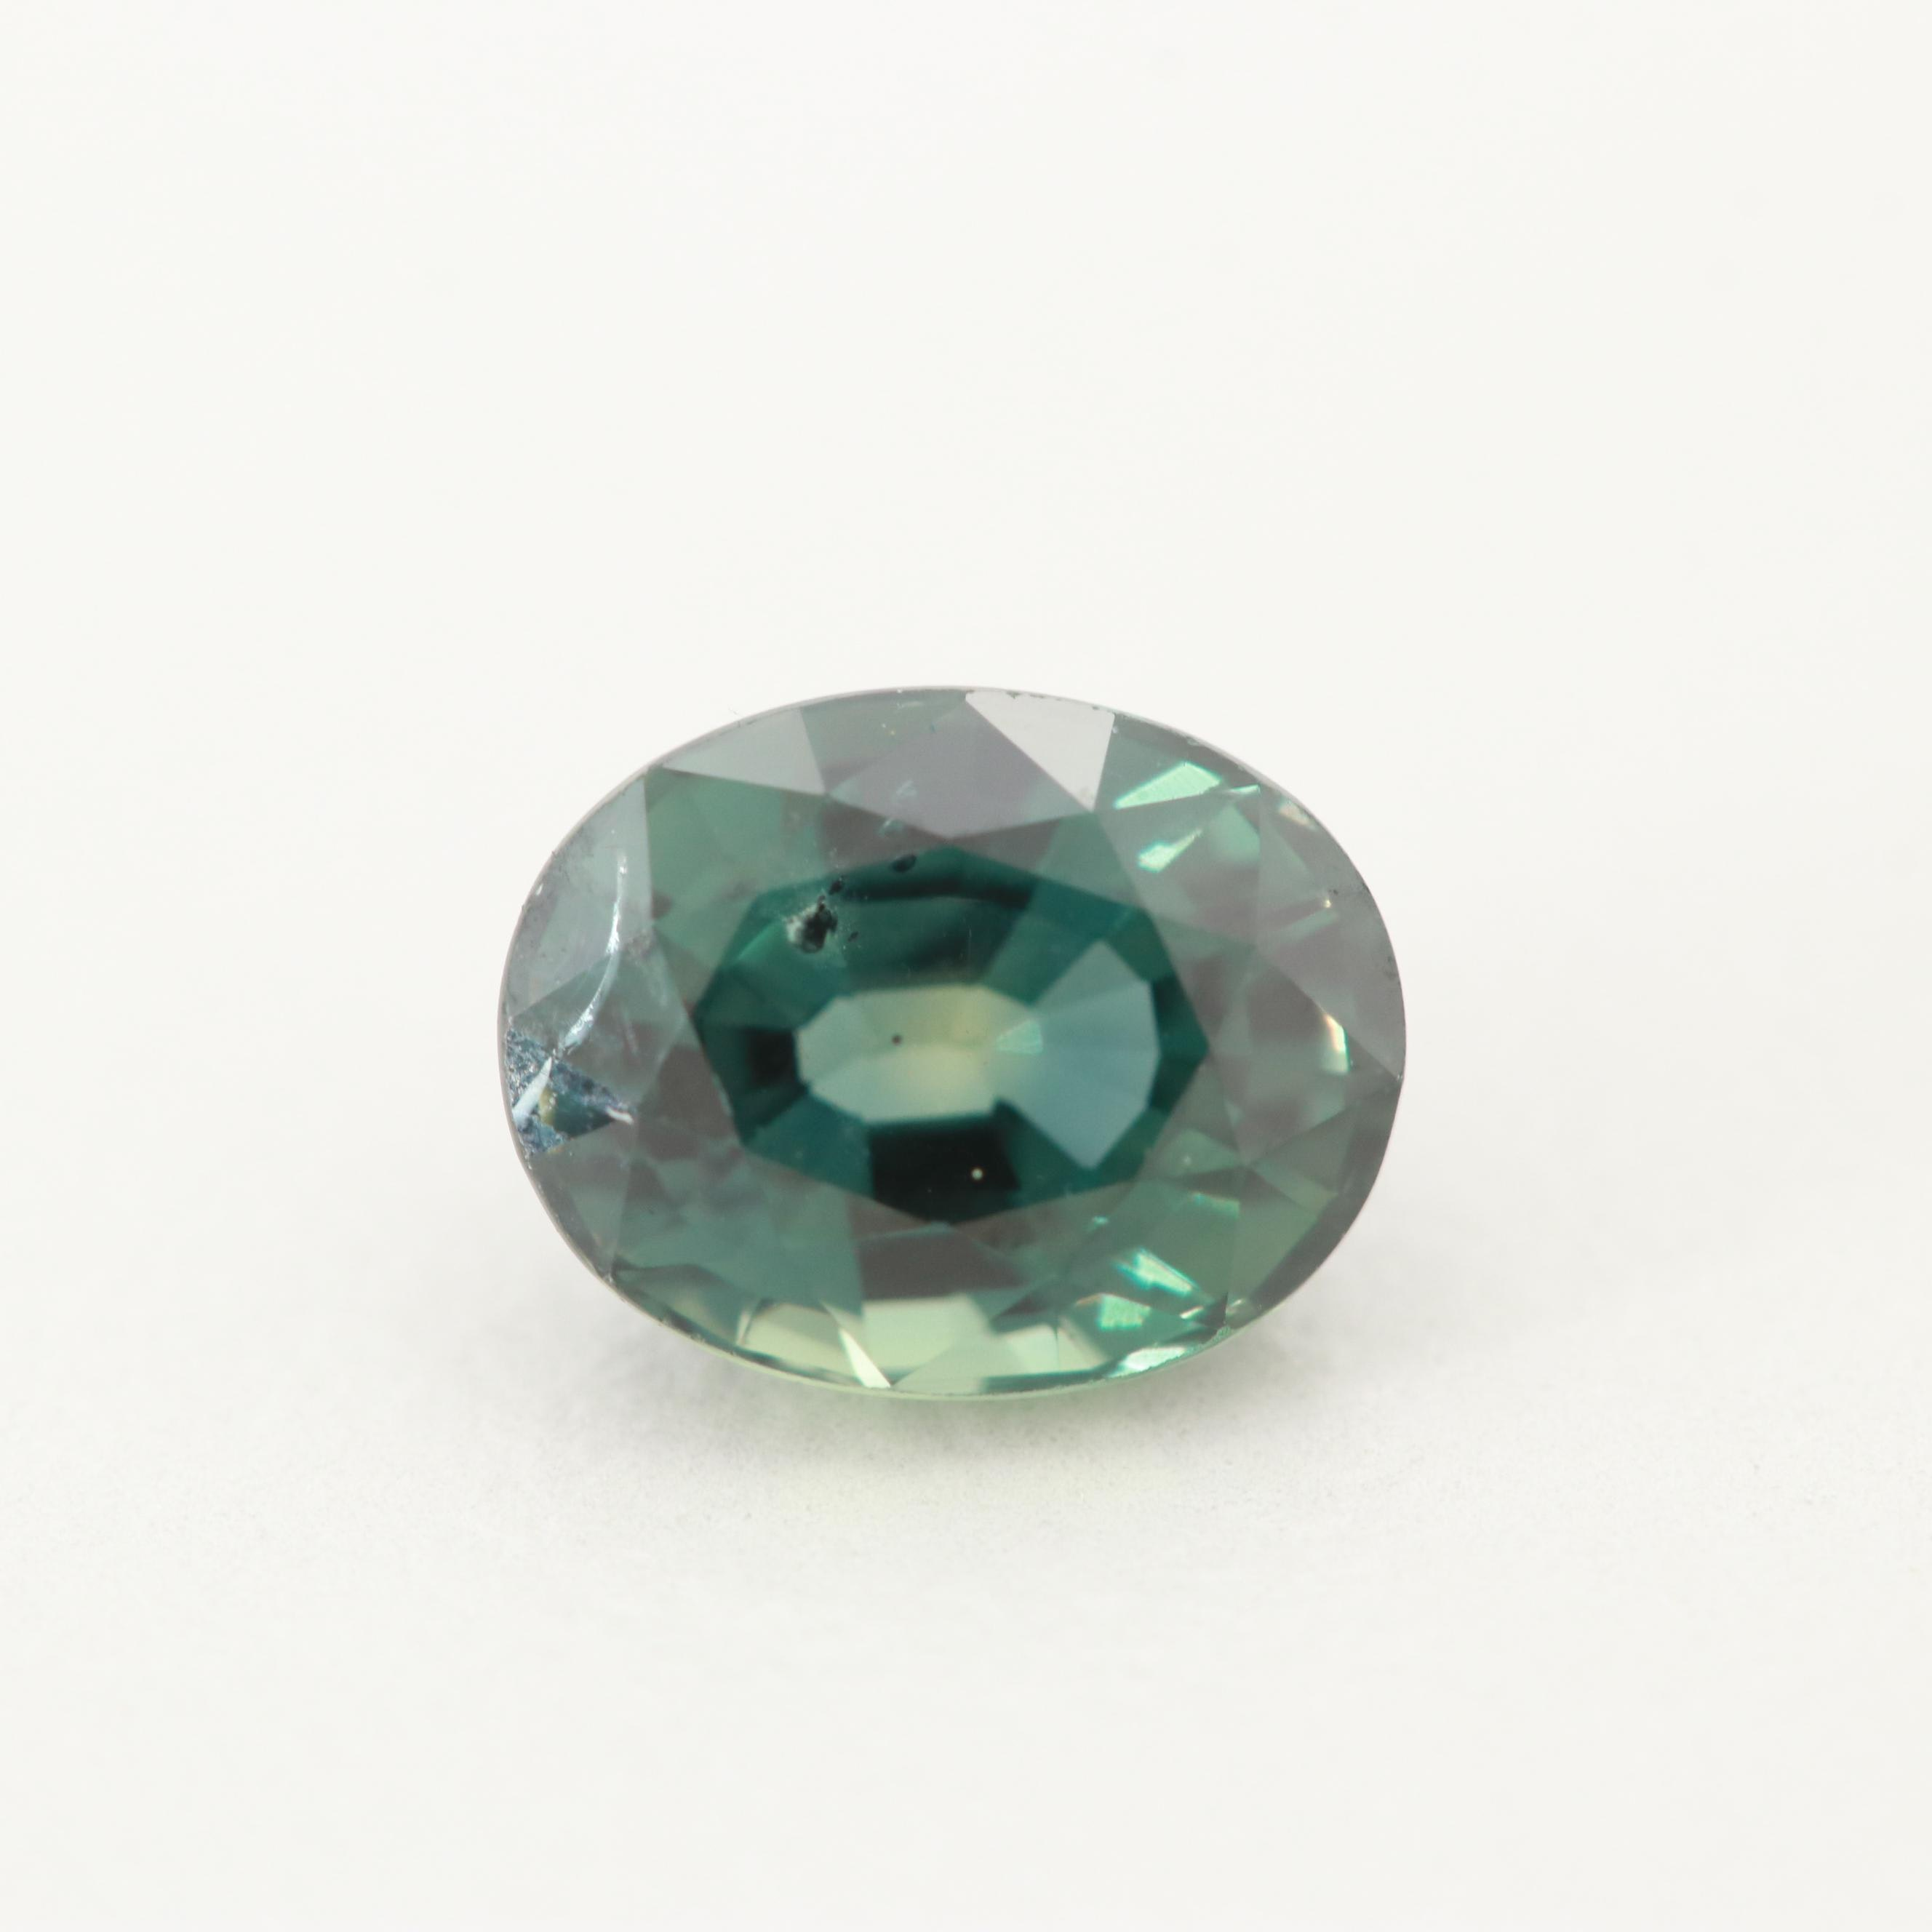 Loose Unheated 1.42 CT Color Shift Sapphire Gemstone